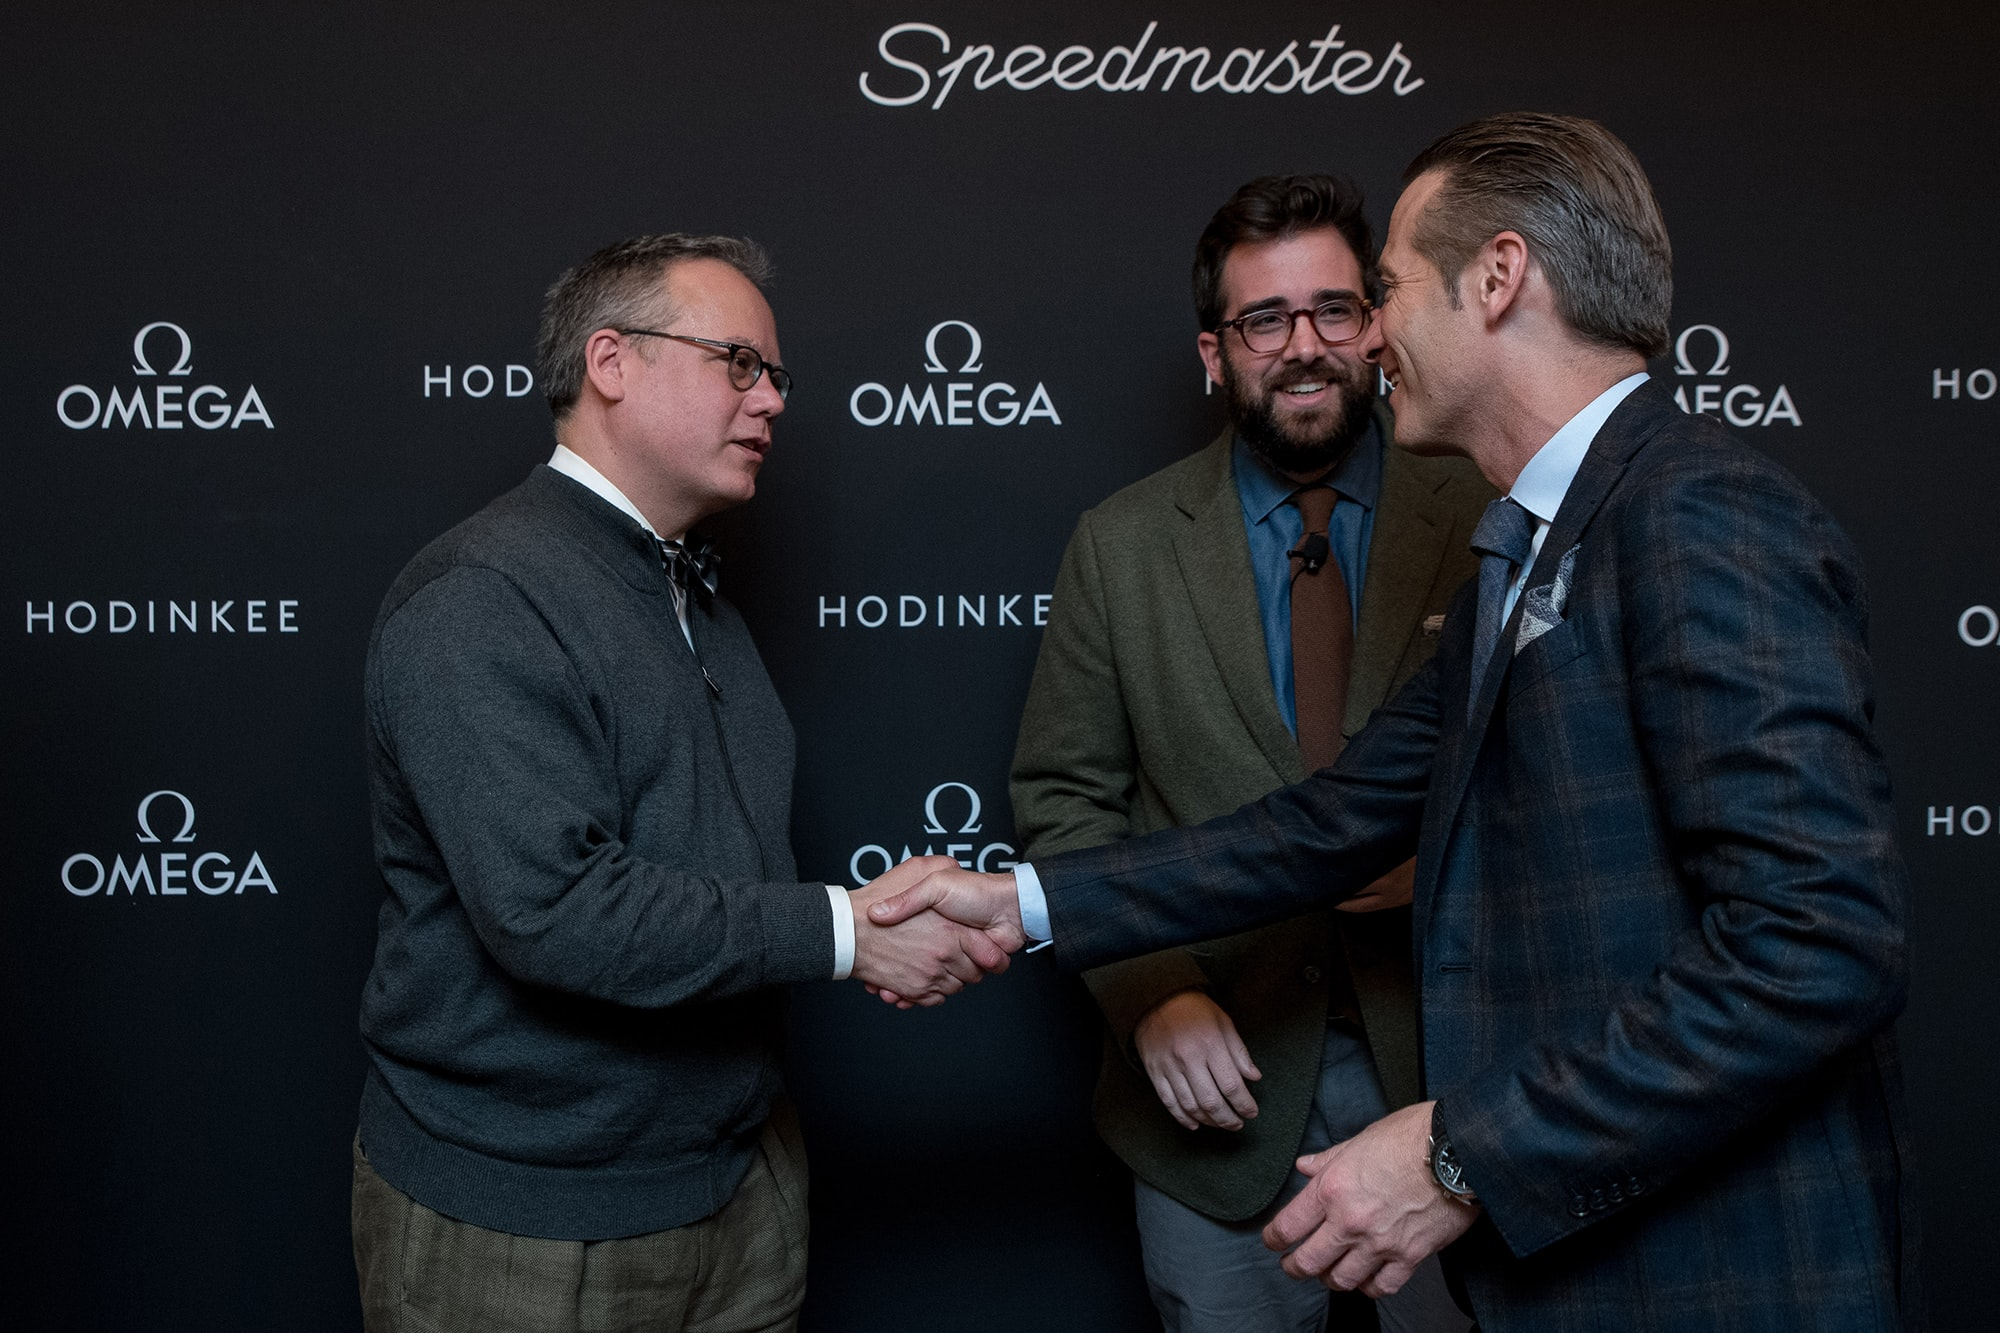 Photo Report: HODINKEE And Omega Celebrate The 60th Anniversary Of The Speedmaster Photo Report: HODINKEE And Omega Celebrate The 60th Anniversary Of The Speedmaster  20170221 OmegaSpeedmaster60th 107